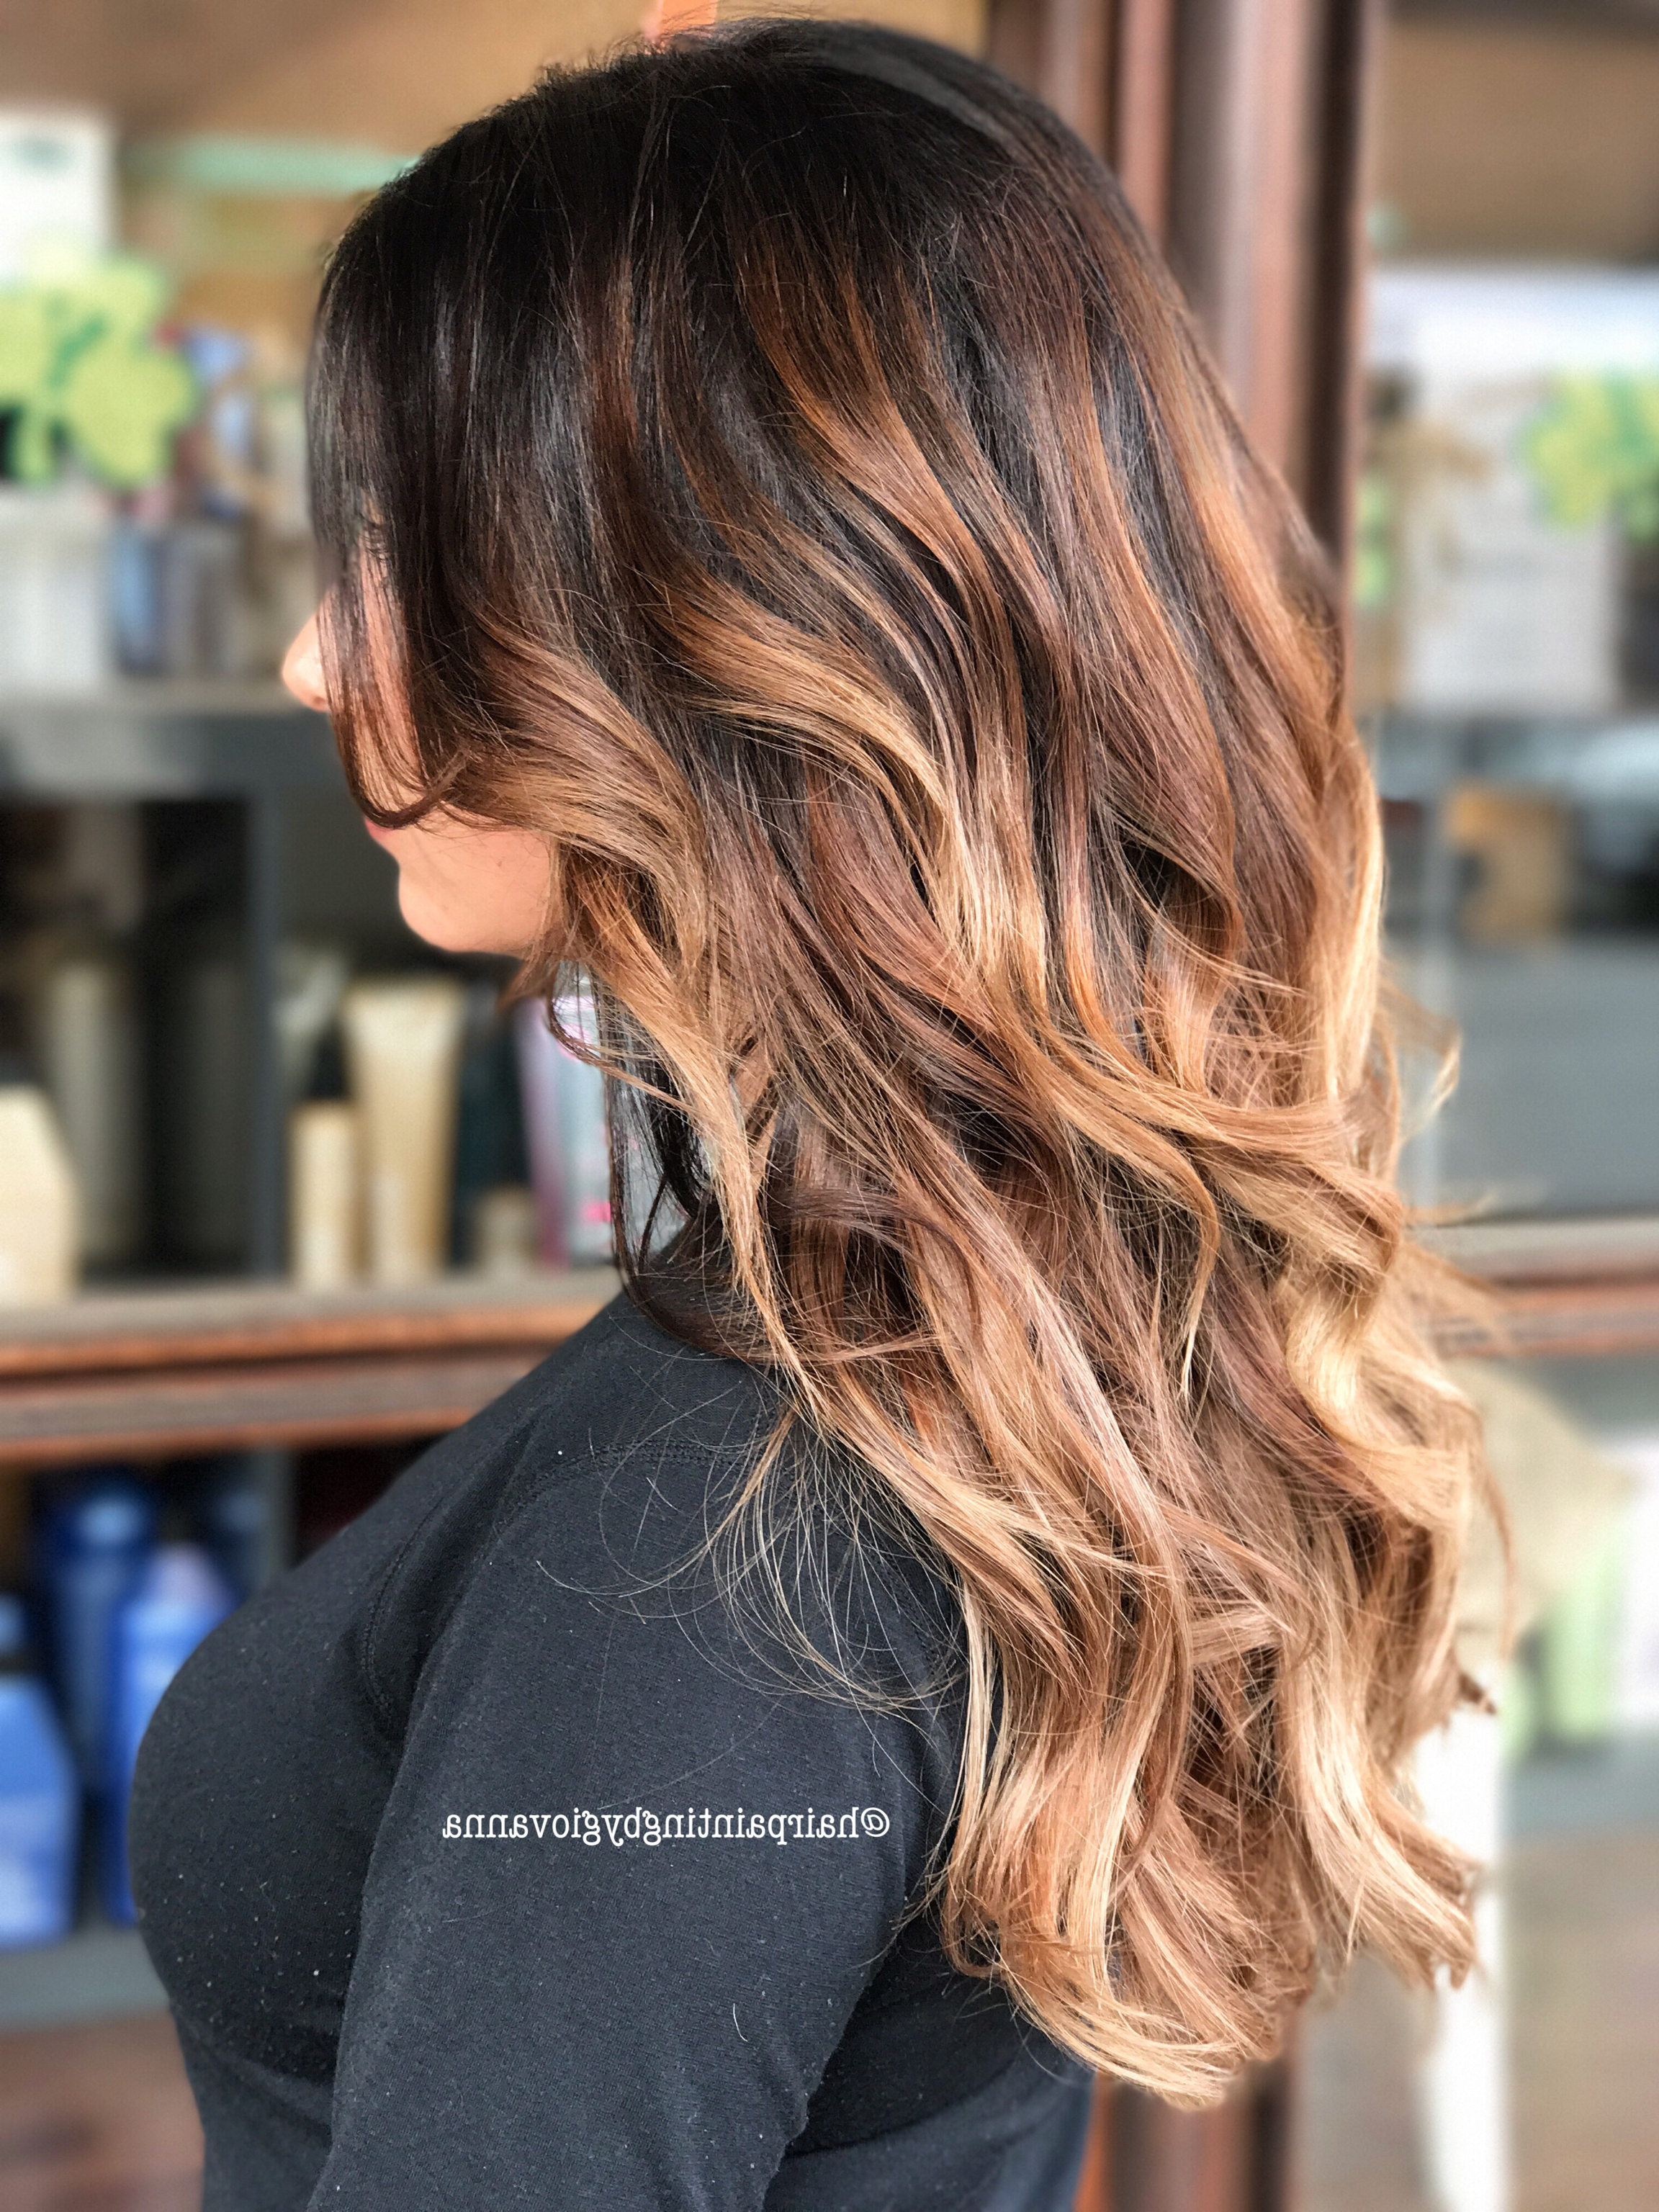 Fashionable Tiny Twist Hairstyles With Caramel Highlights Intended For Cinnamon Caramel Balayage #balayage #hairinspo #brownhair (View 10 of 20)